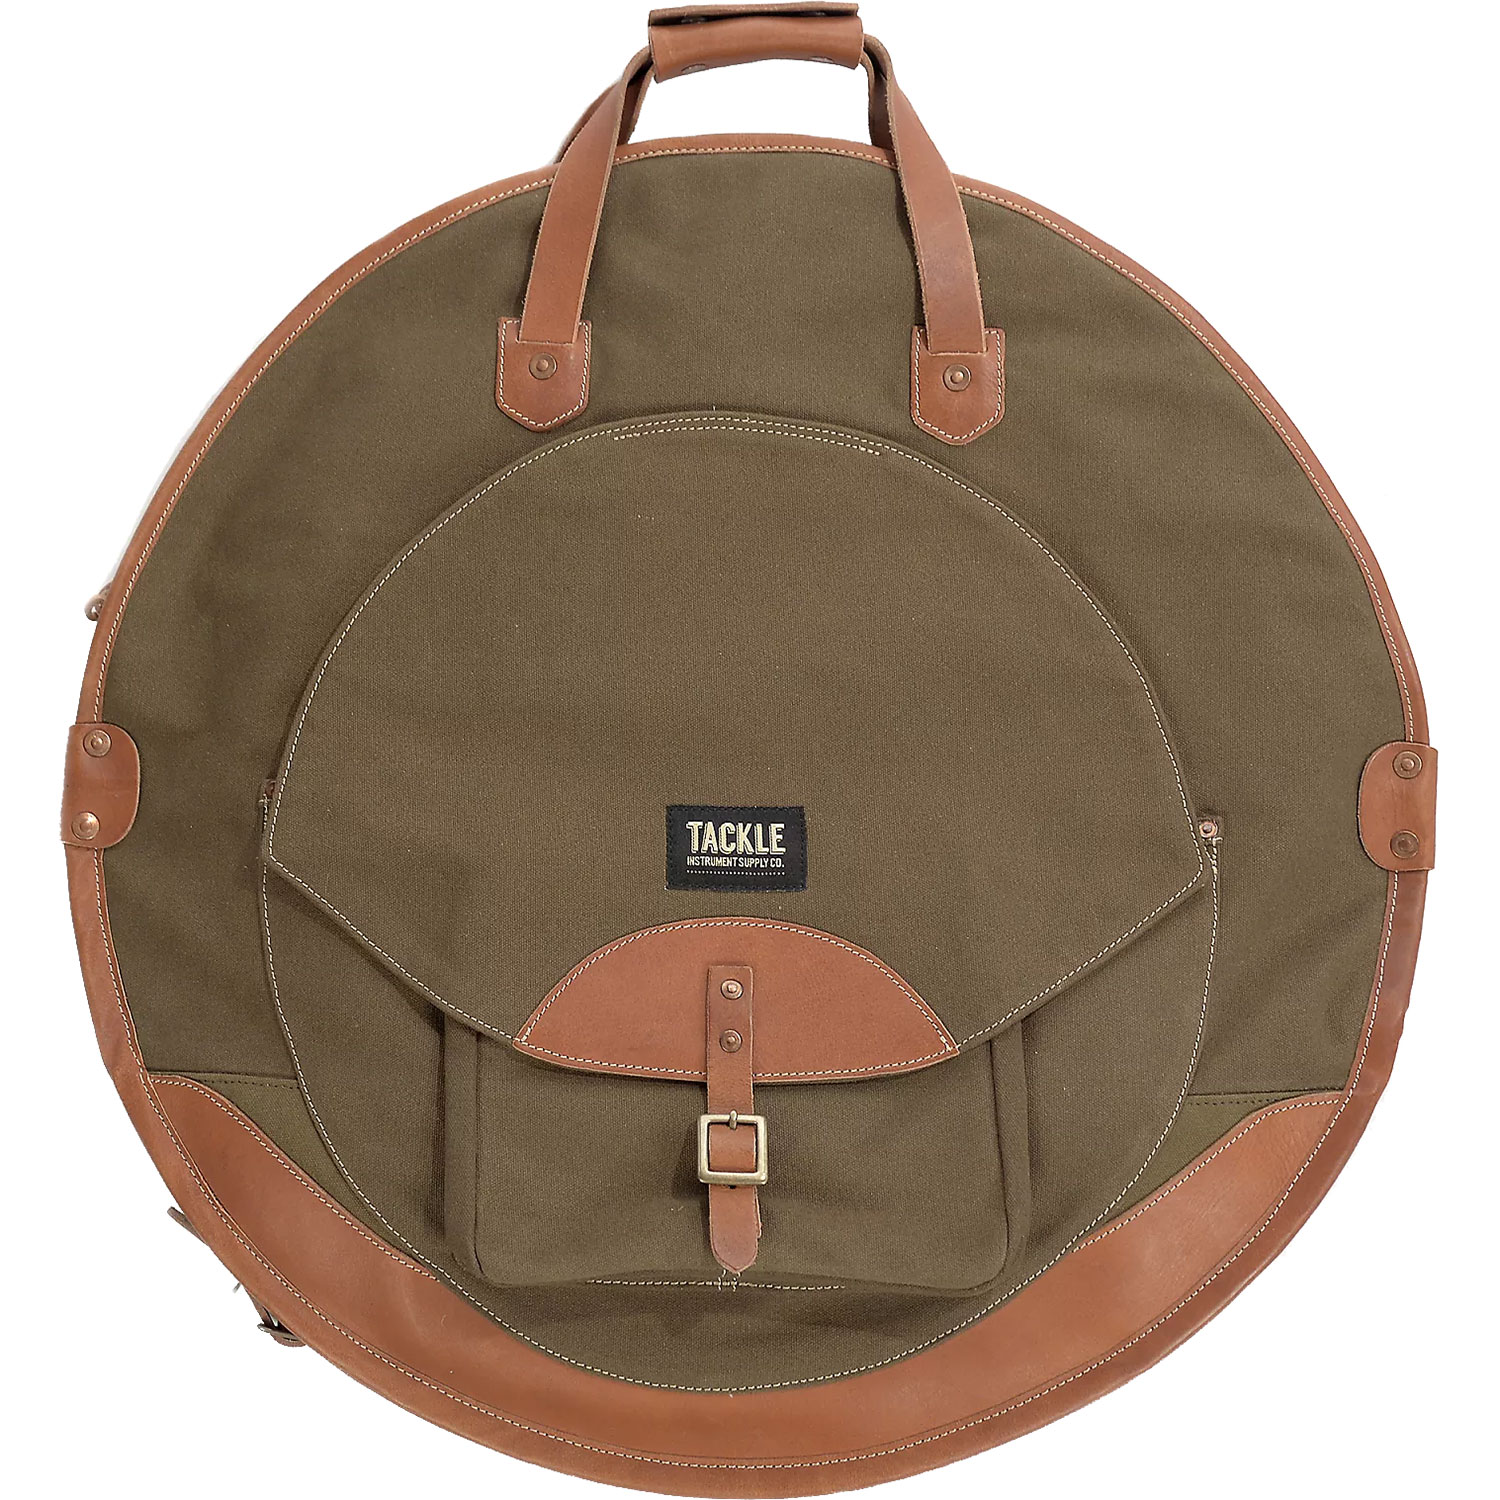 "Tackle Instrument Supply Co. 24"" Black Canvas/Tan Leather Cymbal Bag"